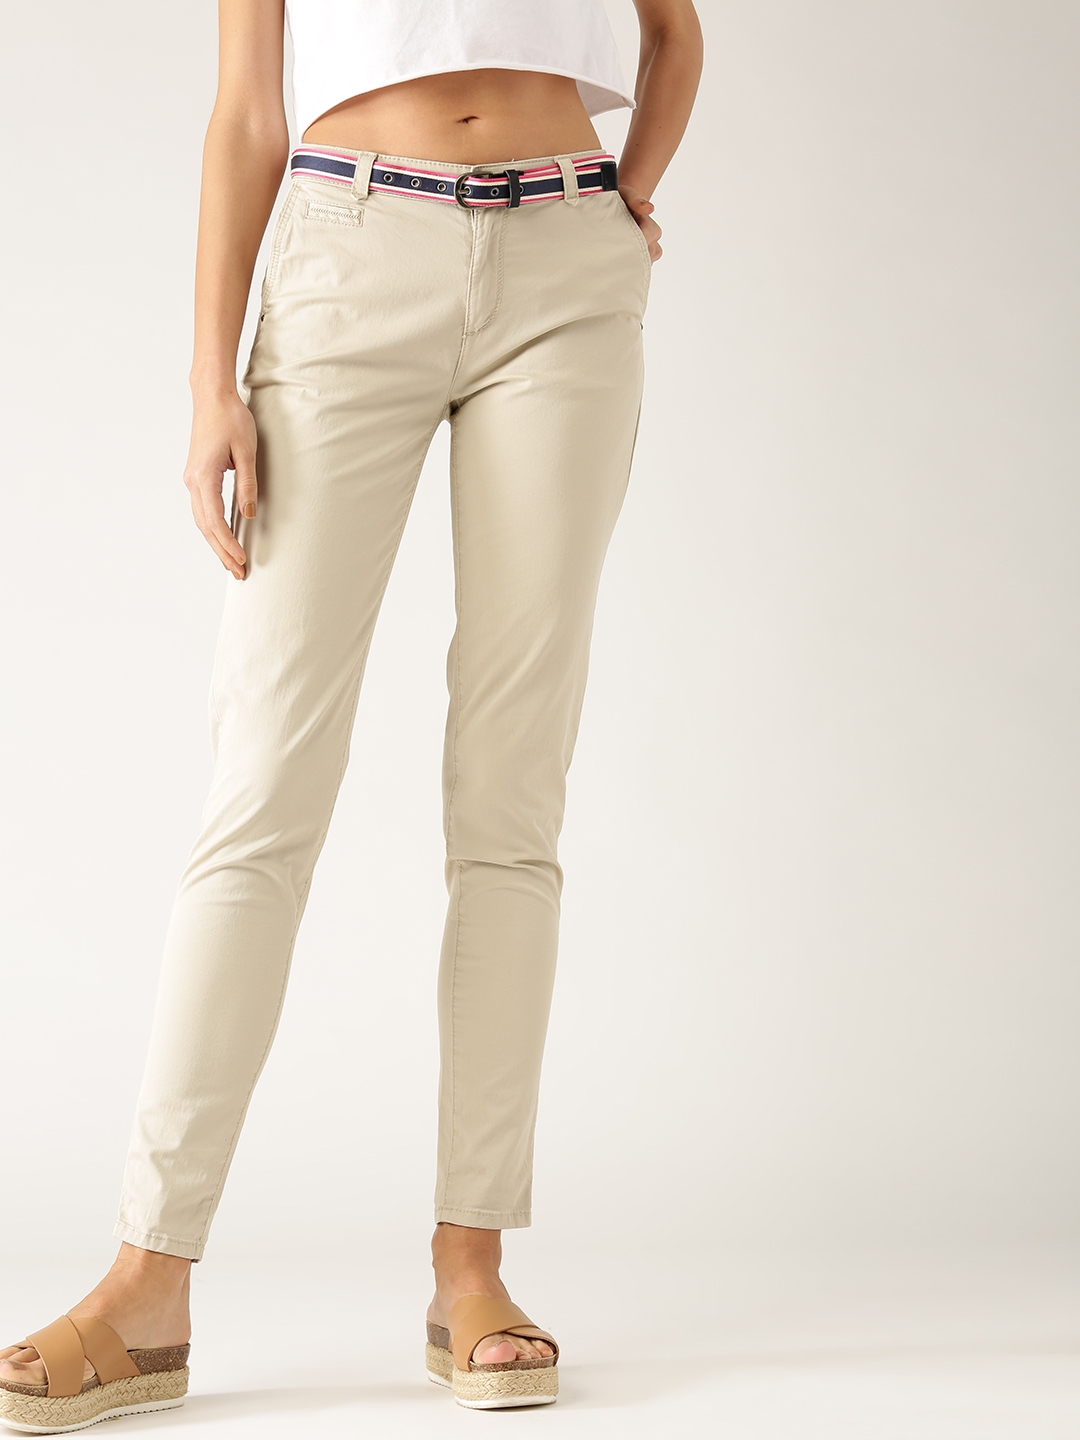 Esprit Beige Buy Trousers Women For Solid L1fckj With Belt Chinos T1JcKlF